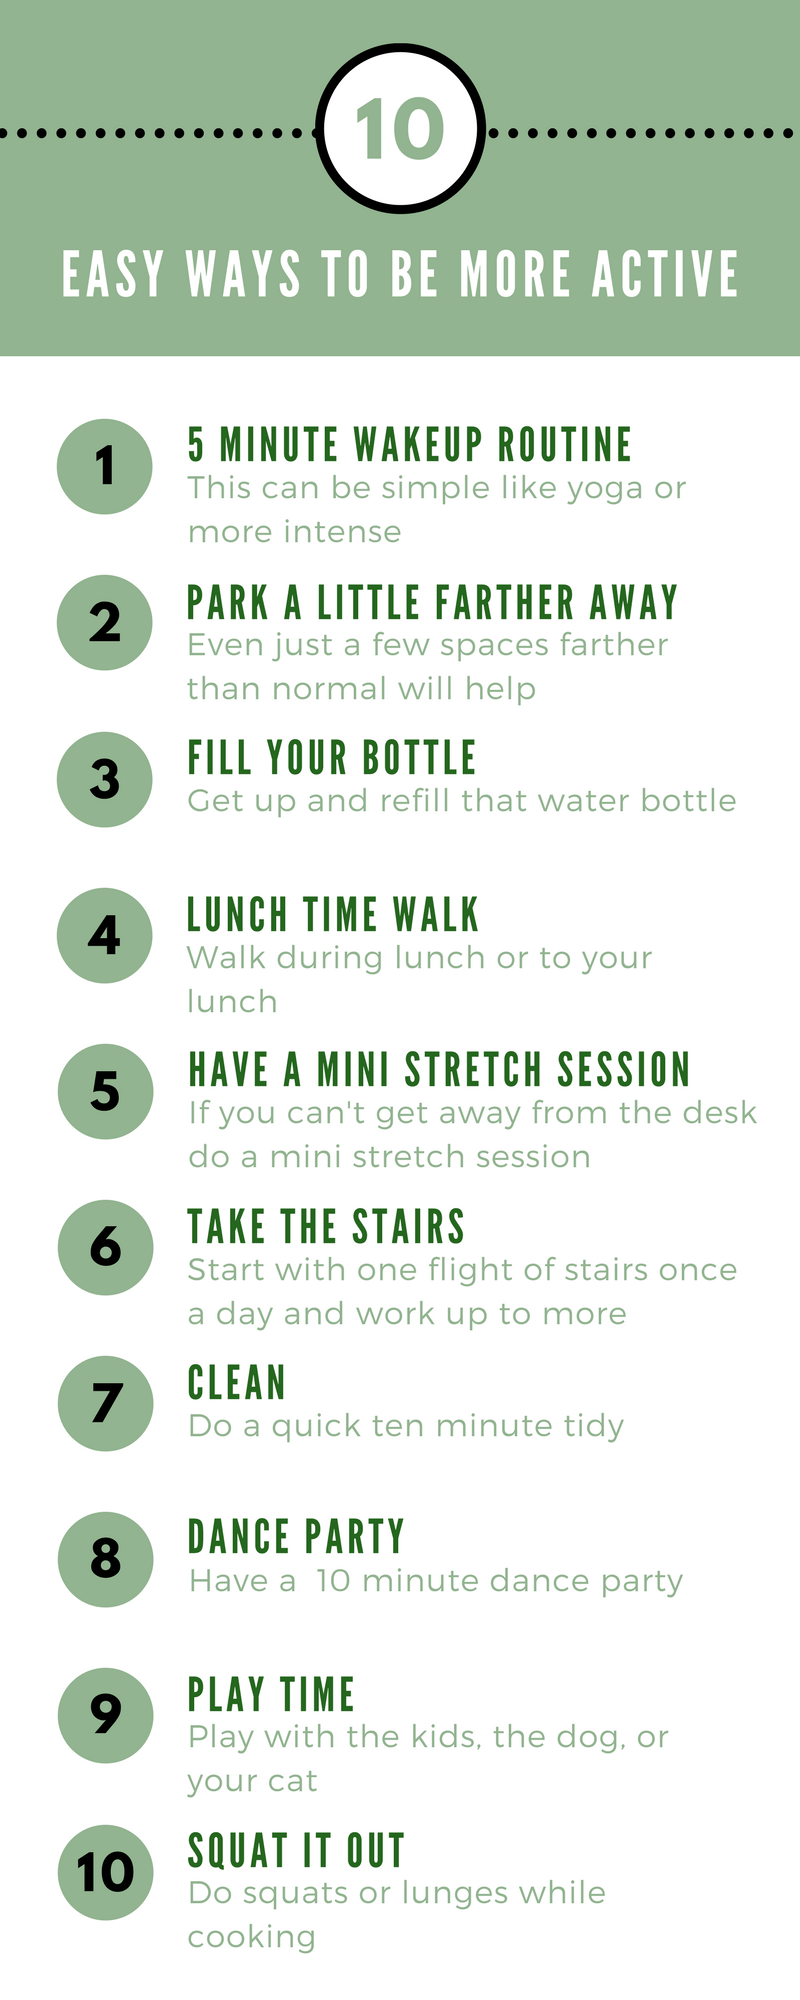 10 easy ways to be more active | health and wellness | pinterest